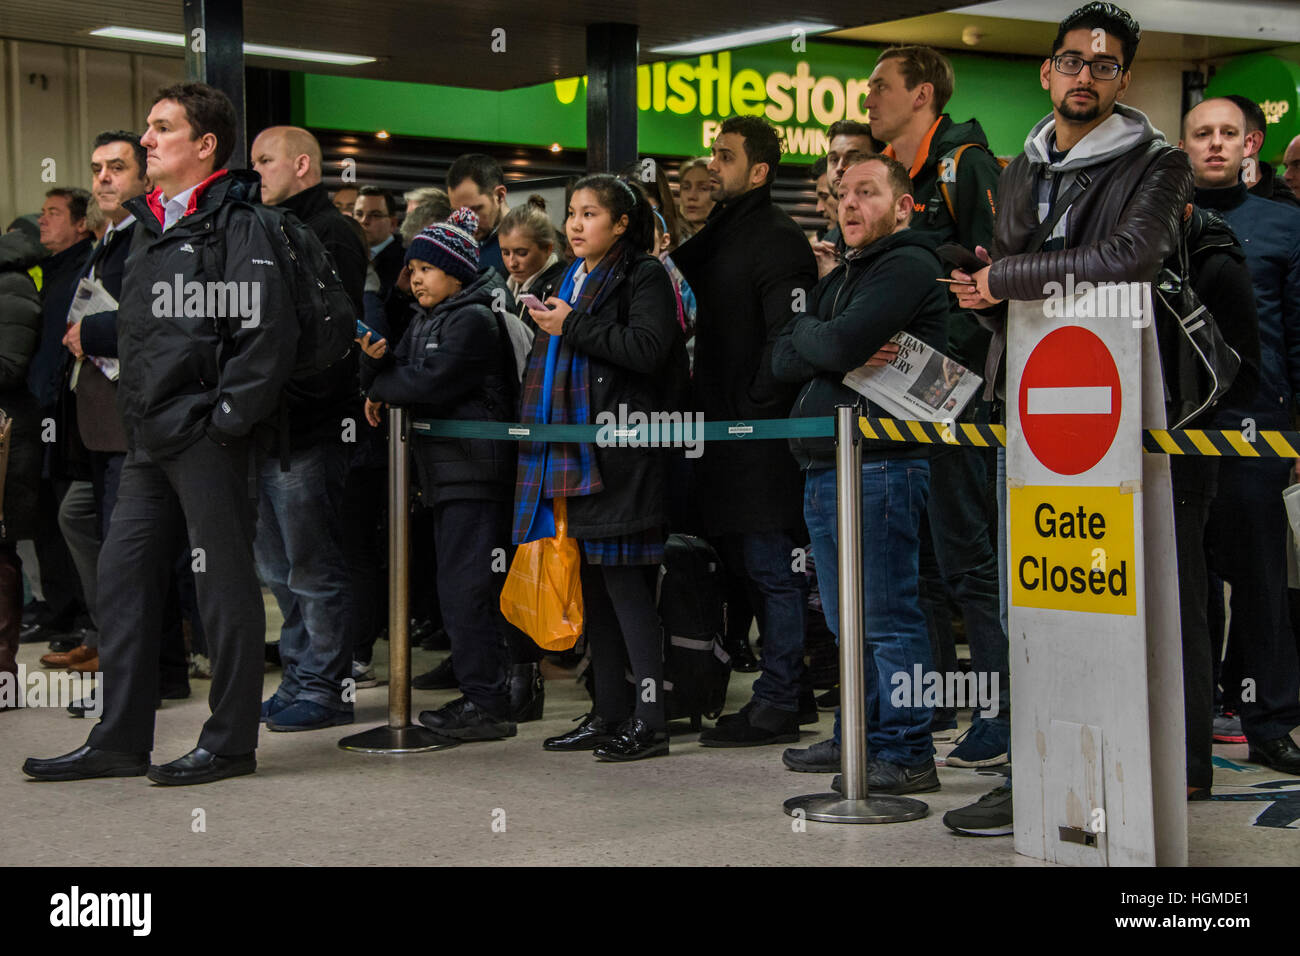 London, UK. 10th January, 2016. Passengers held behind barriers for 1 of four Caterham services tonight - Evening - Stock Image